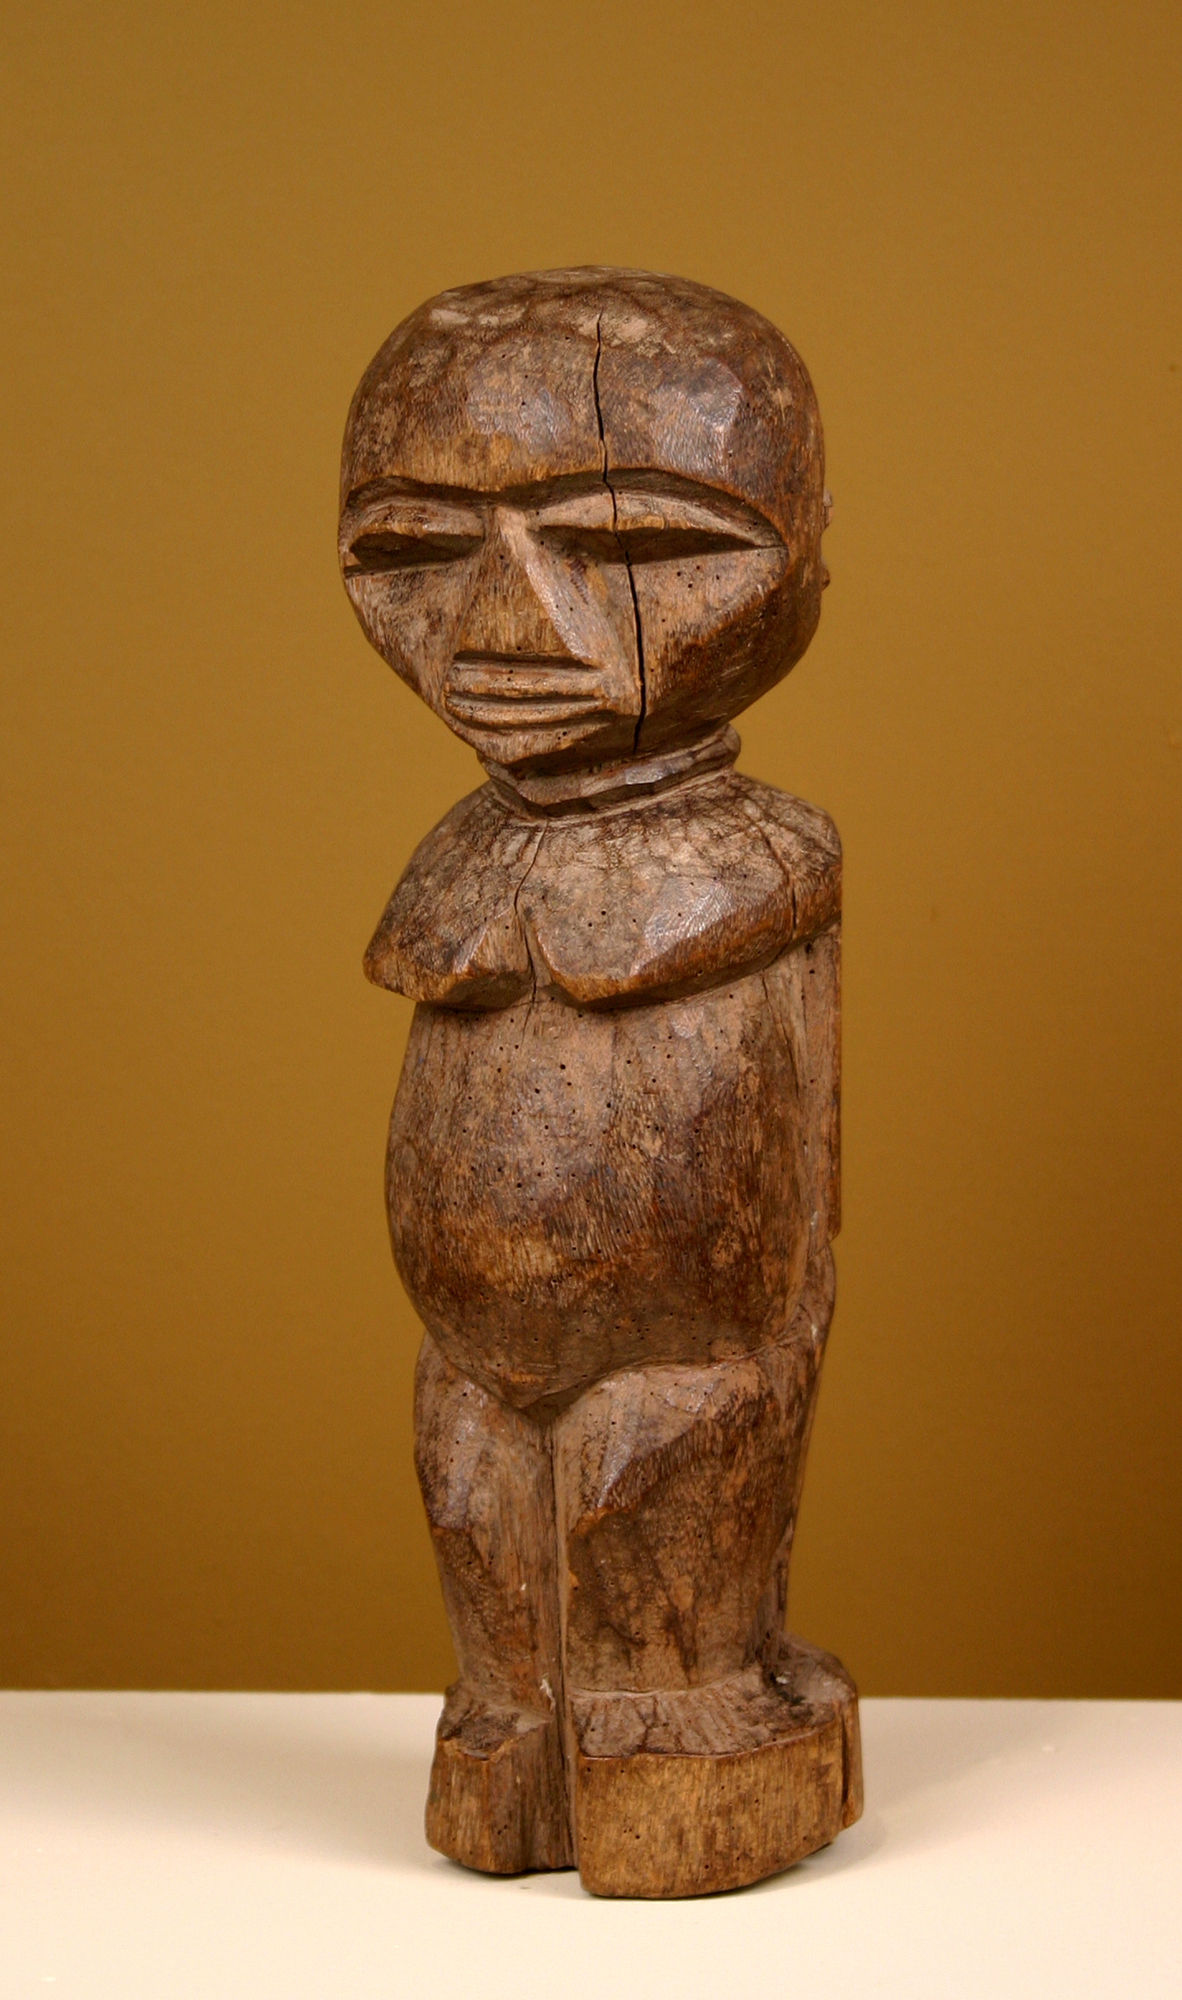 Artist Unknown (Lobi, Burkina Faso or Ivory Coast), Untitled, n.d. Wood. Collection of DePaul University, gift of the May Weber Foundation.